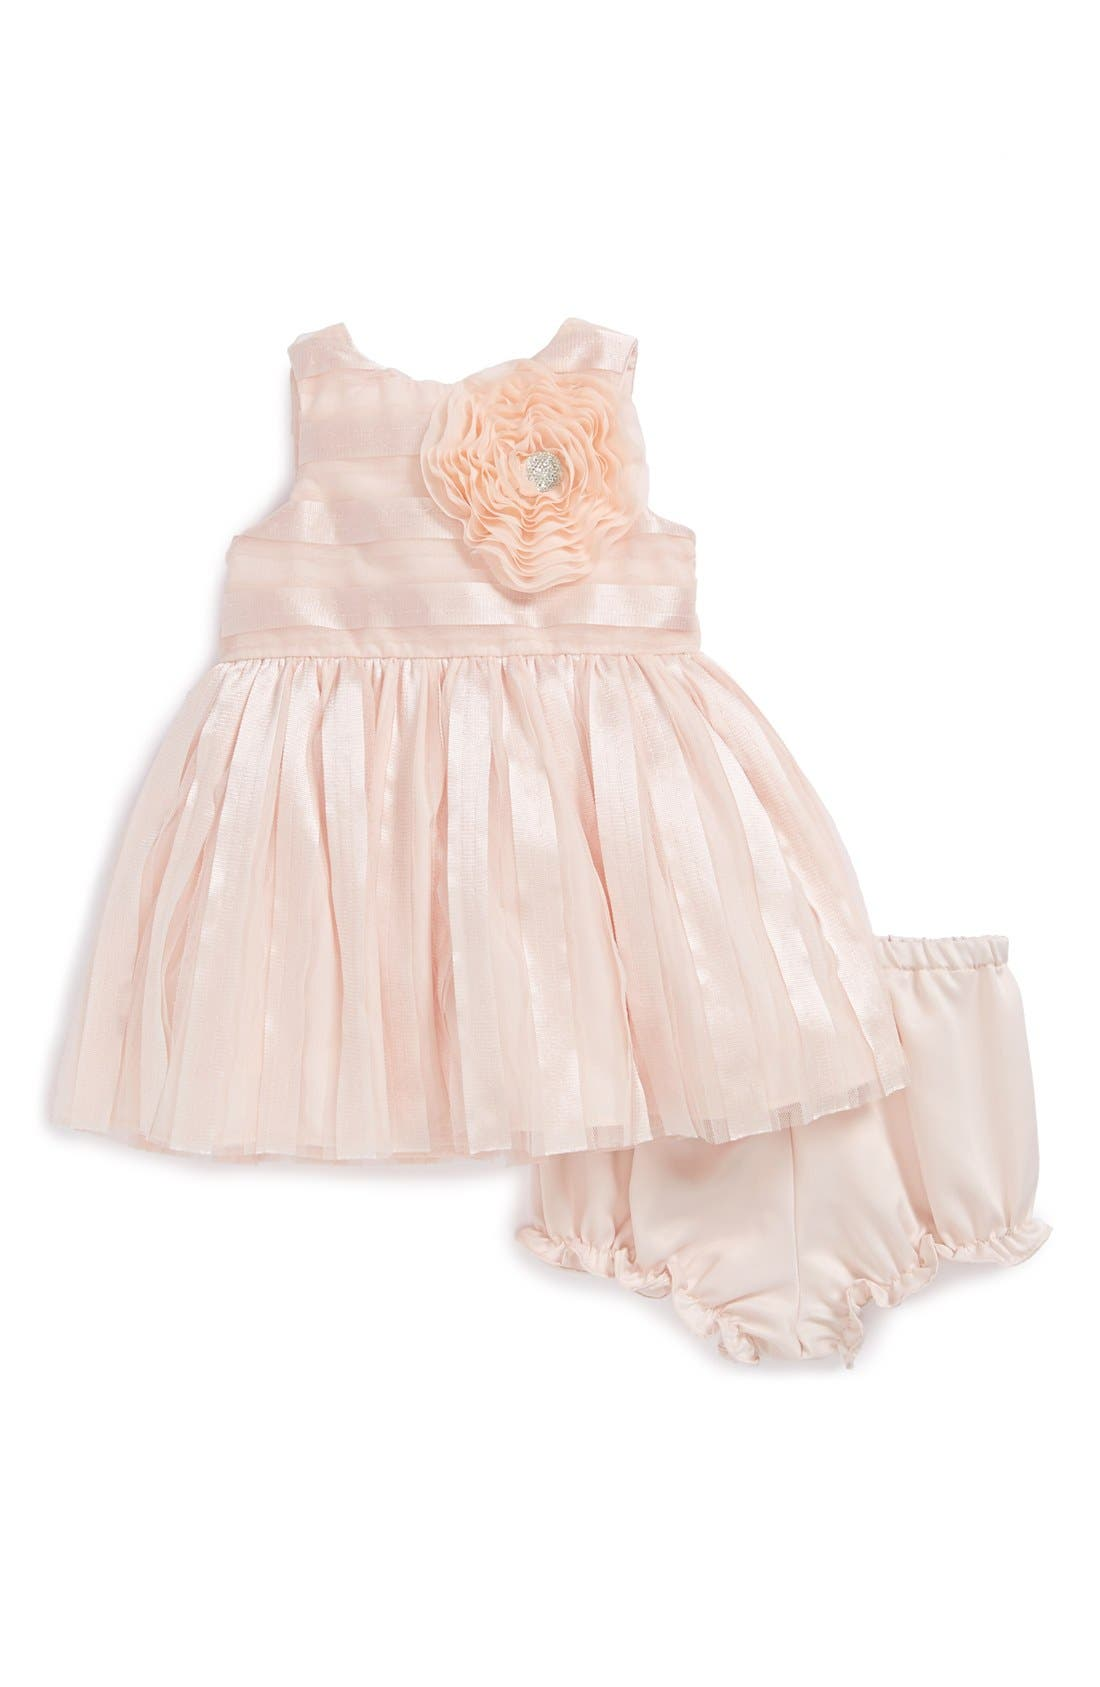 Alternate Image 1 Selected - Pippa & Julie Ribbon Stripe Dress & Bloomers (Baby Girls)